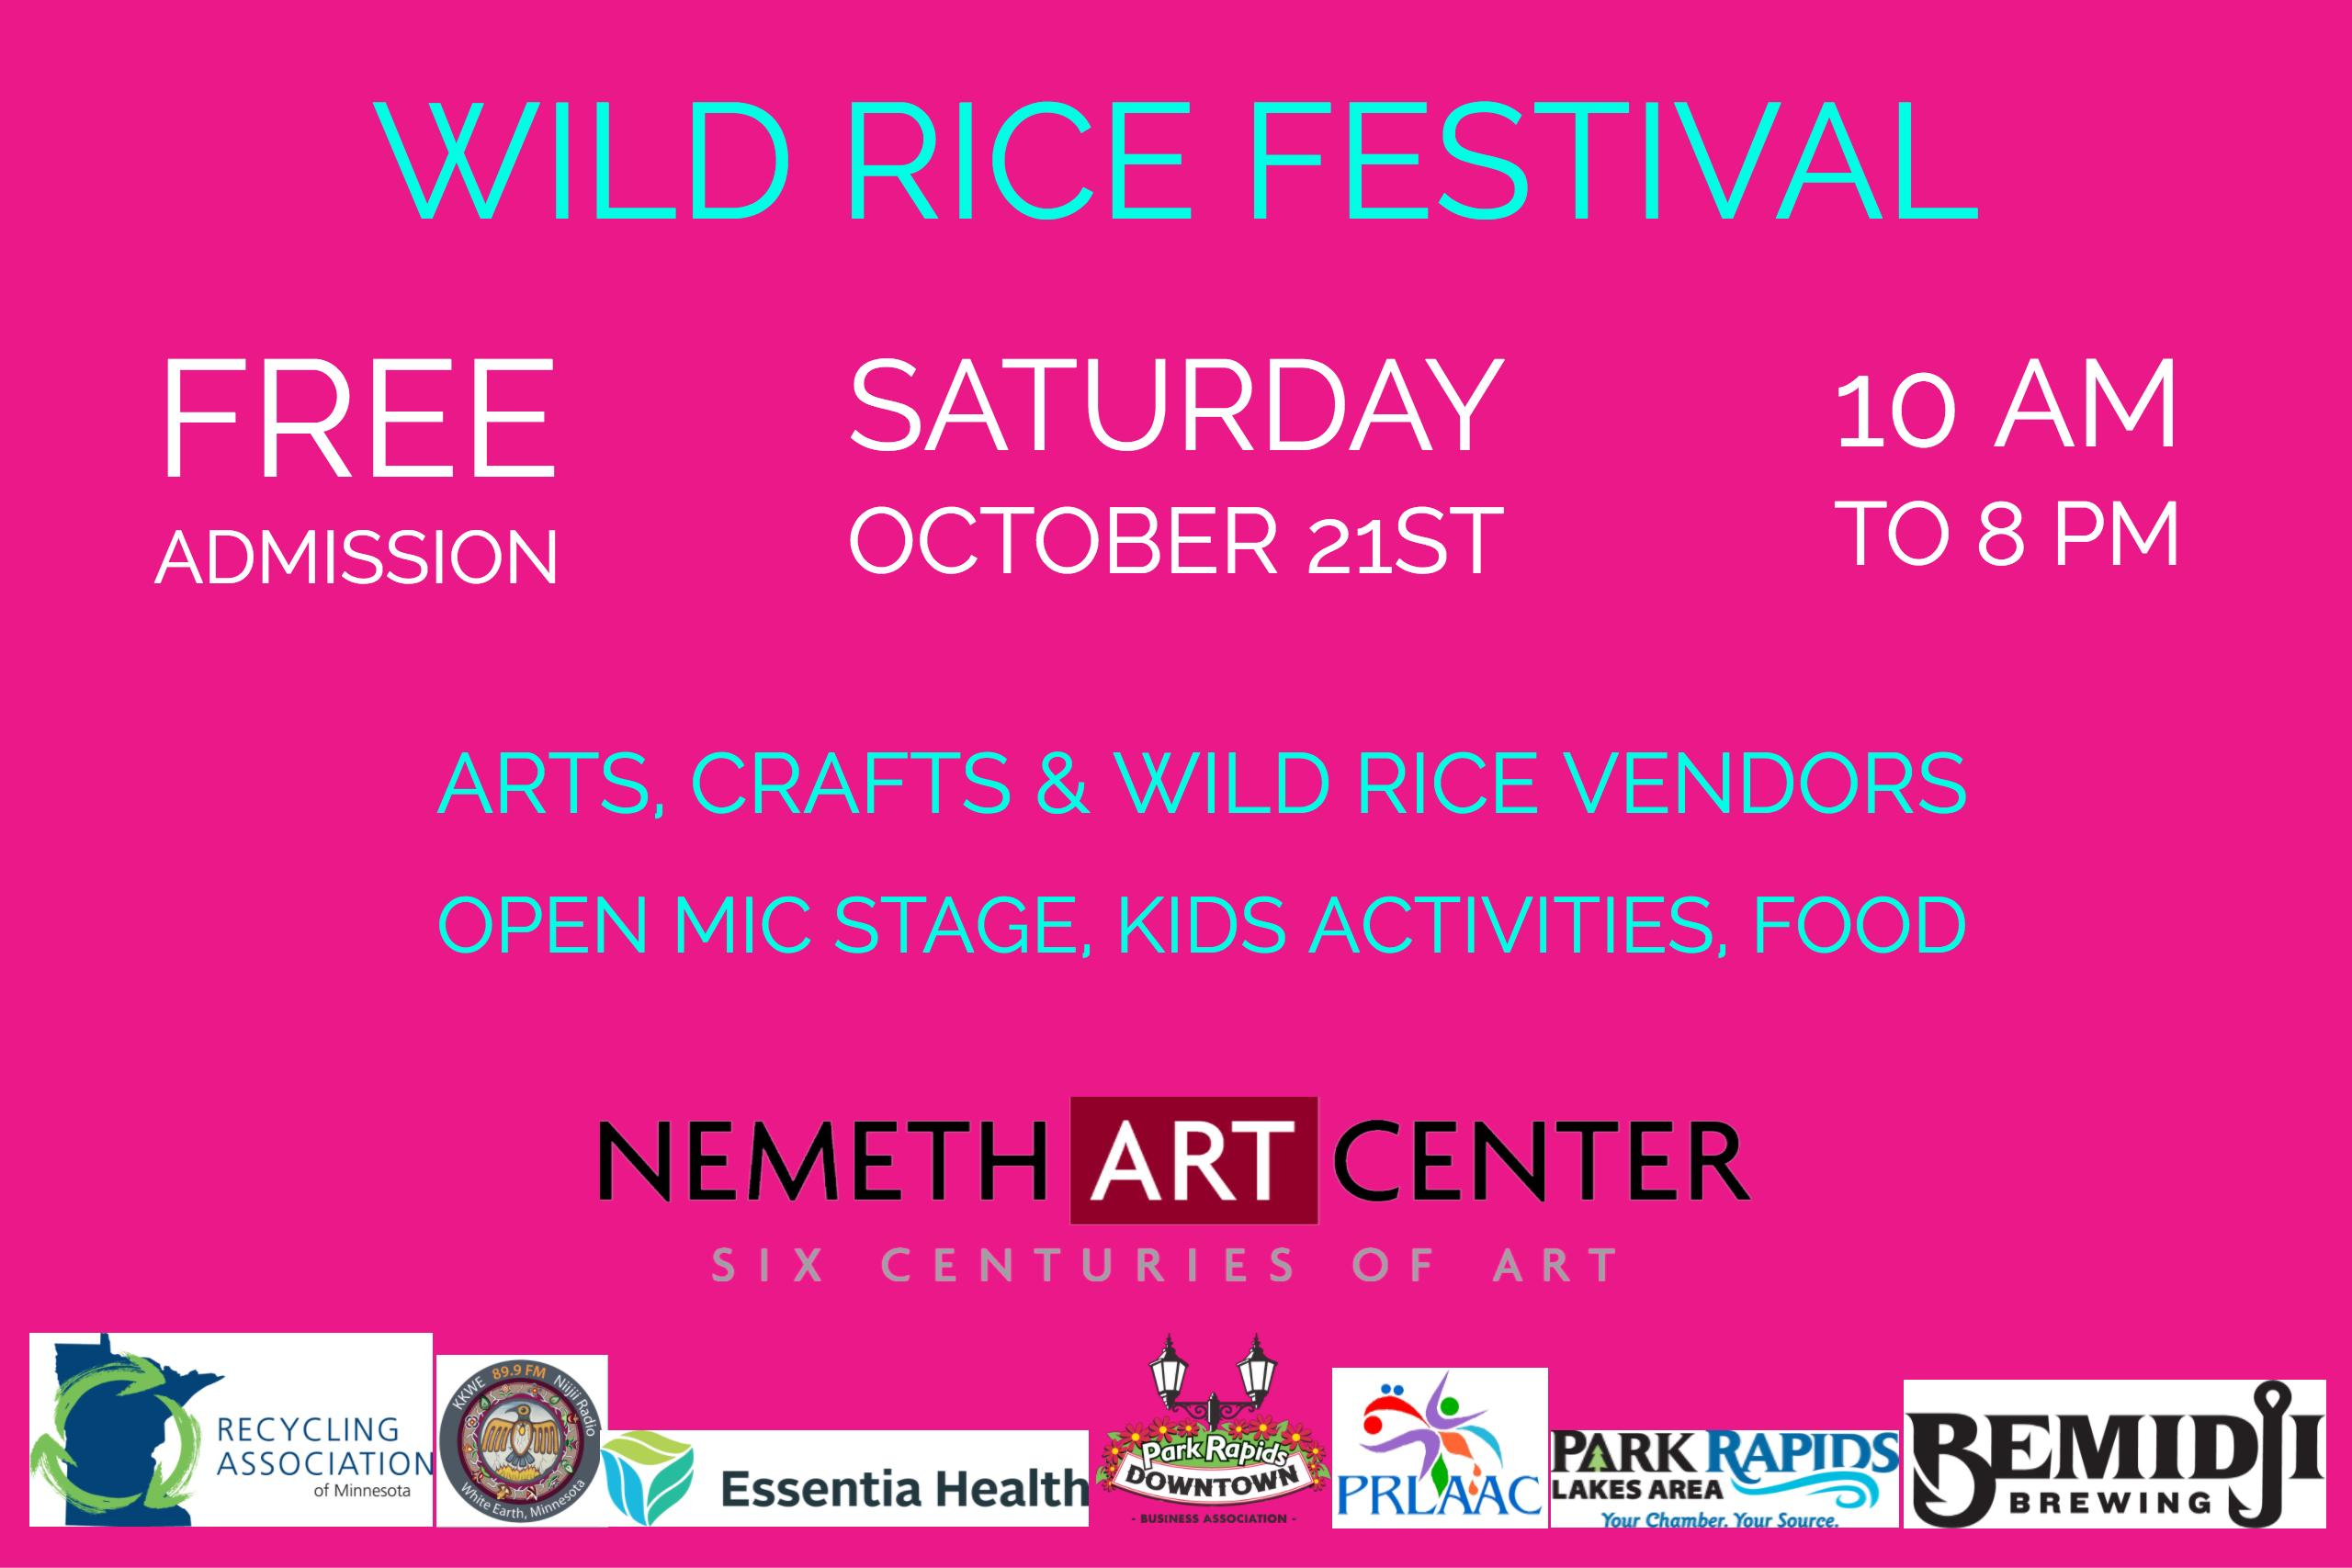 Wild Rice Festival 2017 - Free Admission, Saturday, Oct 21 - 10AM - 8 PM